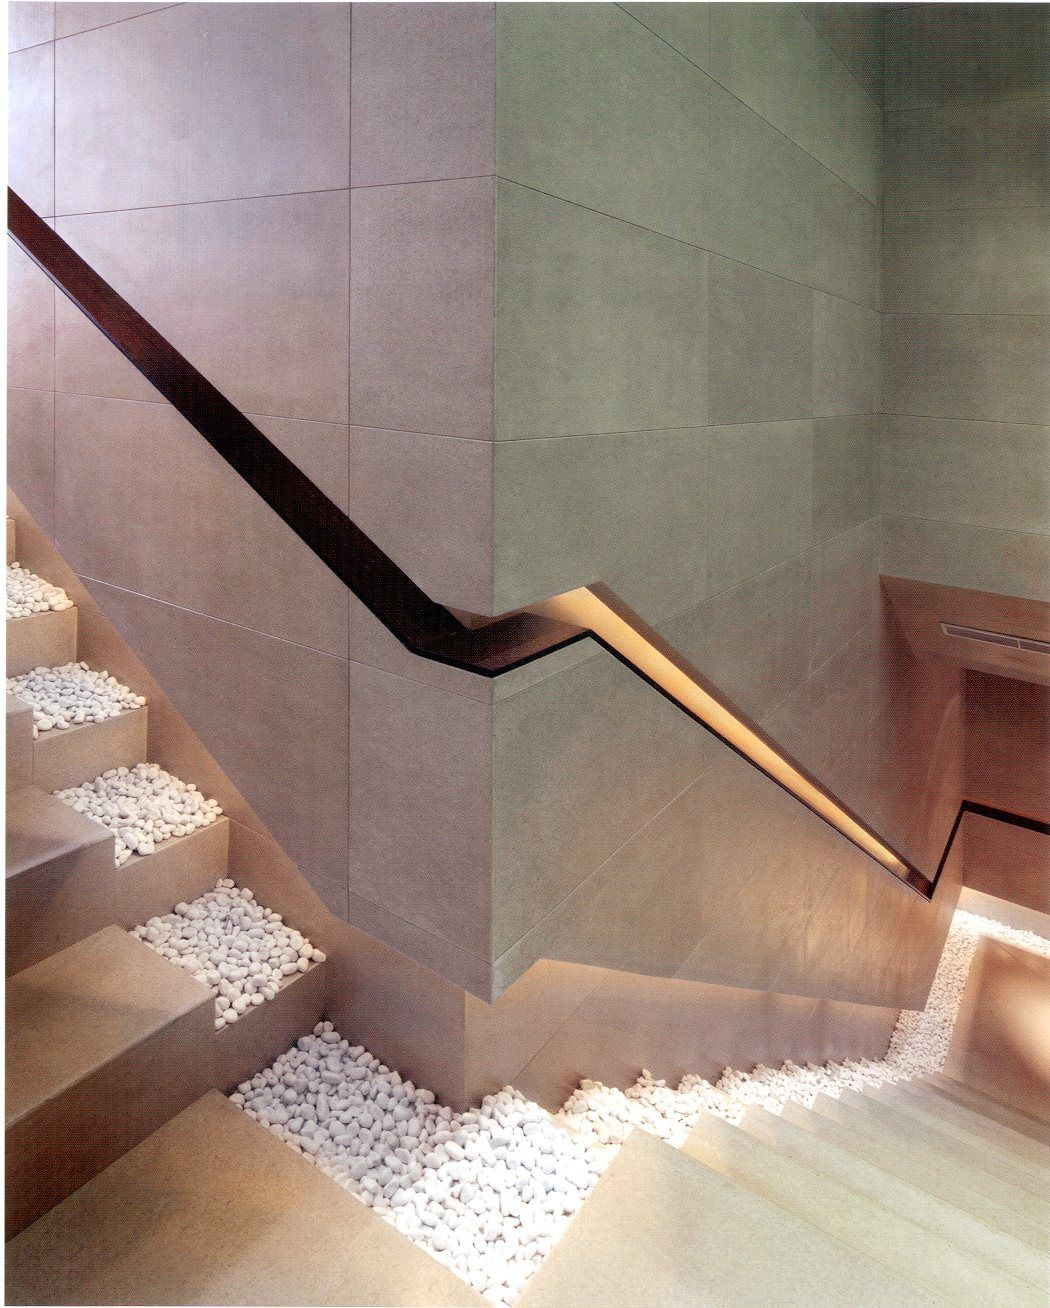 Stunning Staircase And Elevator Design Ideas: Stunning Designs That Changed The Way We Look At Things